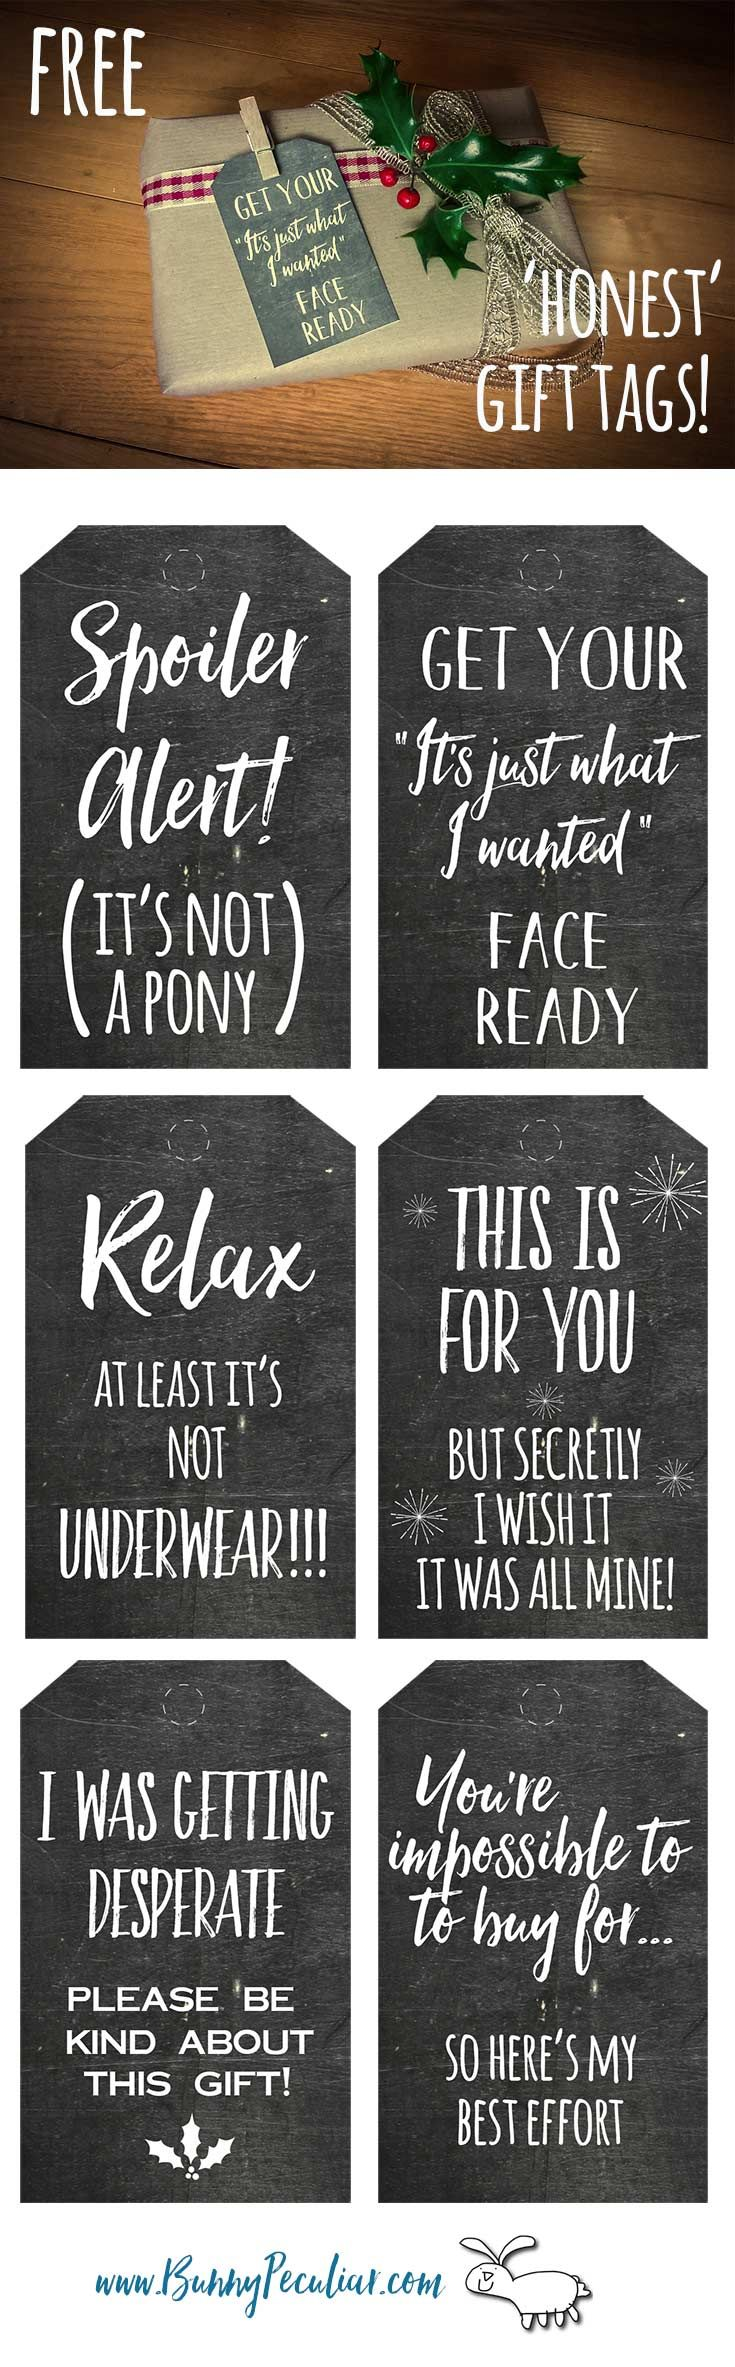 Honest Christmas chalkboard gift tags are what you really need this holiday season.  Tired of trying to guess what to buy people at Christmas? Check out these free tags from Bunny Peculiar.